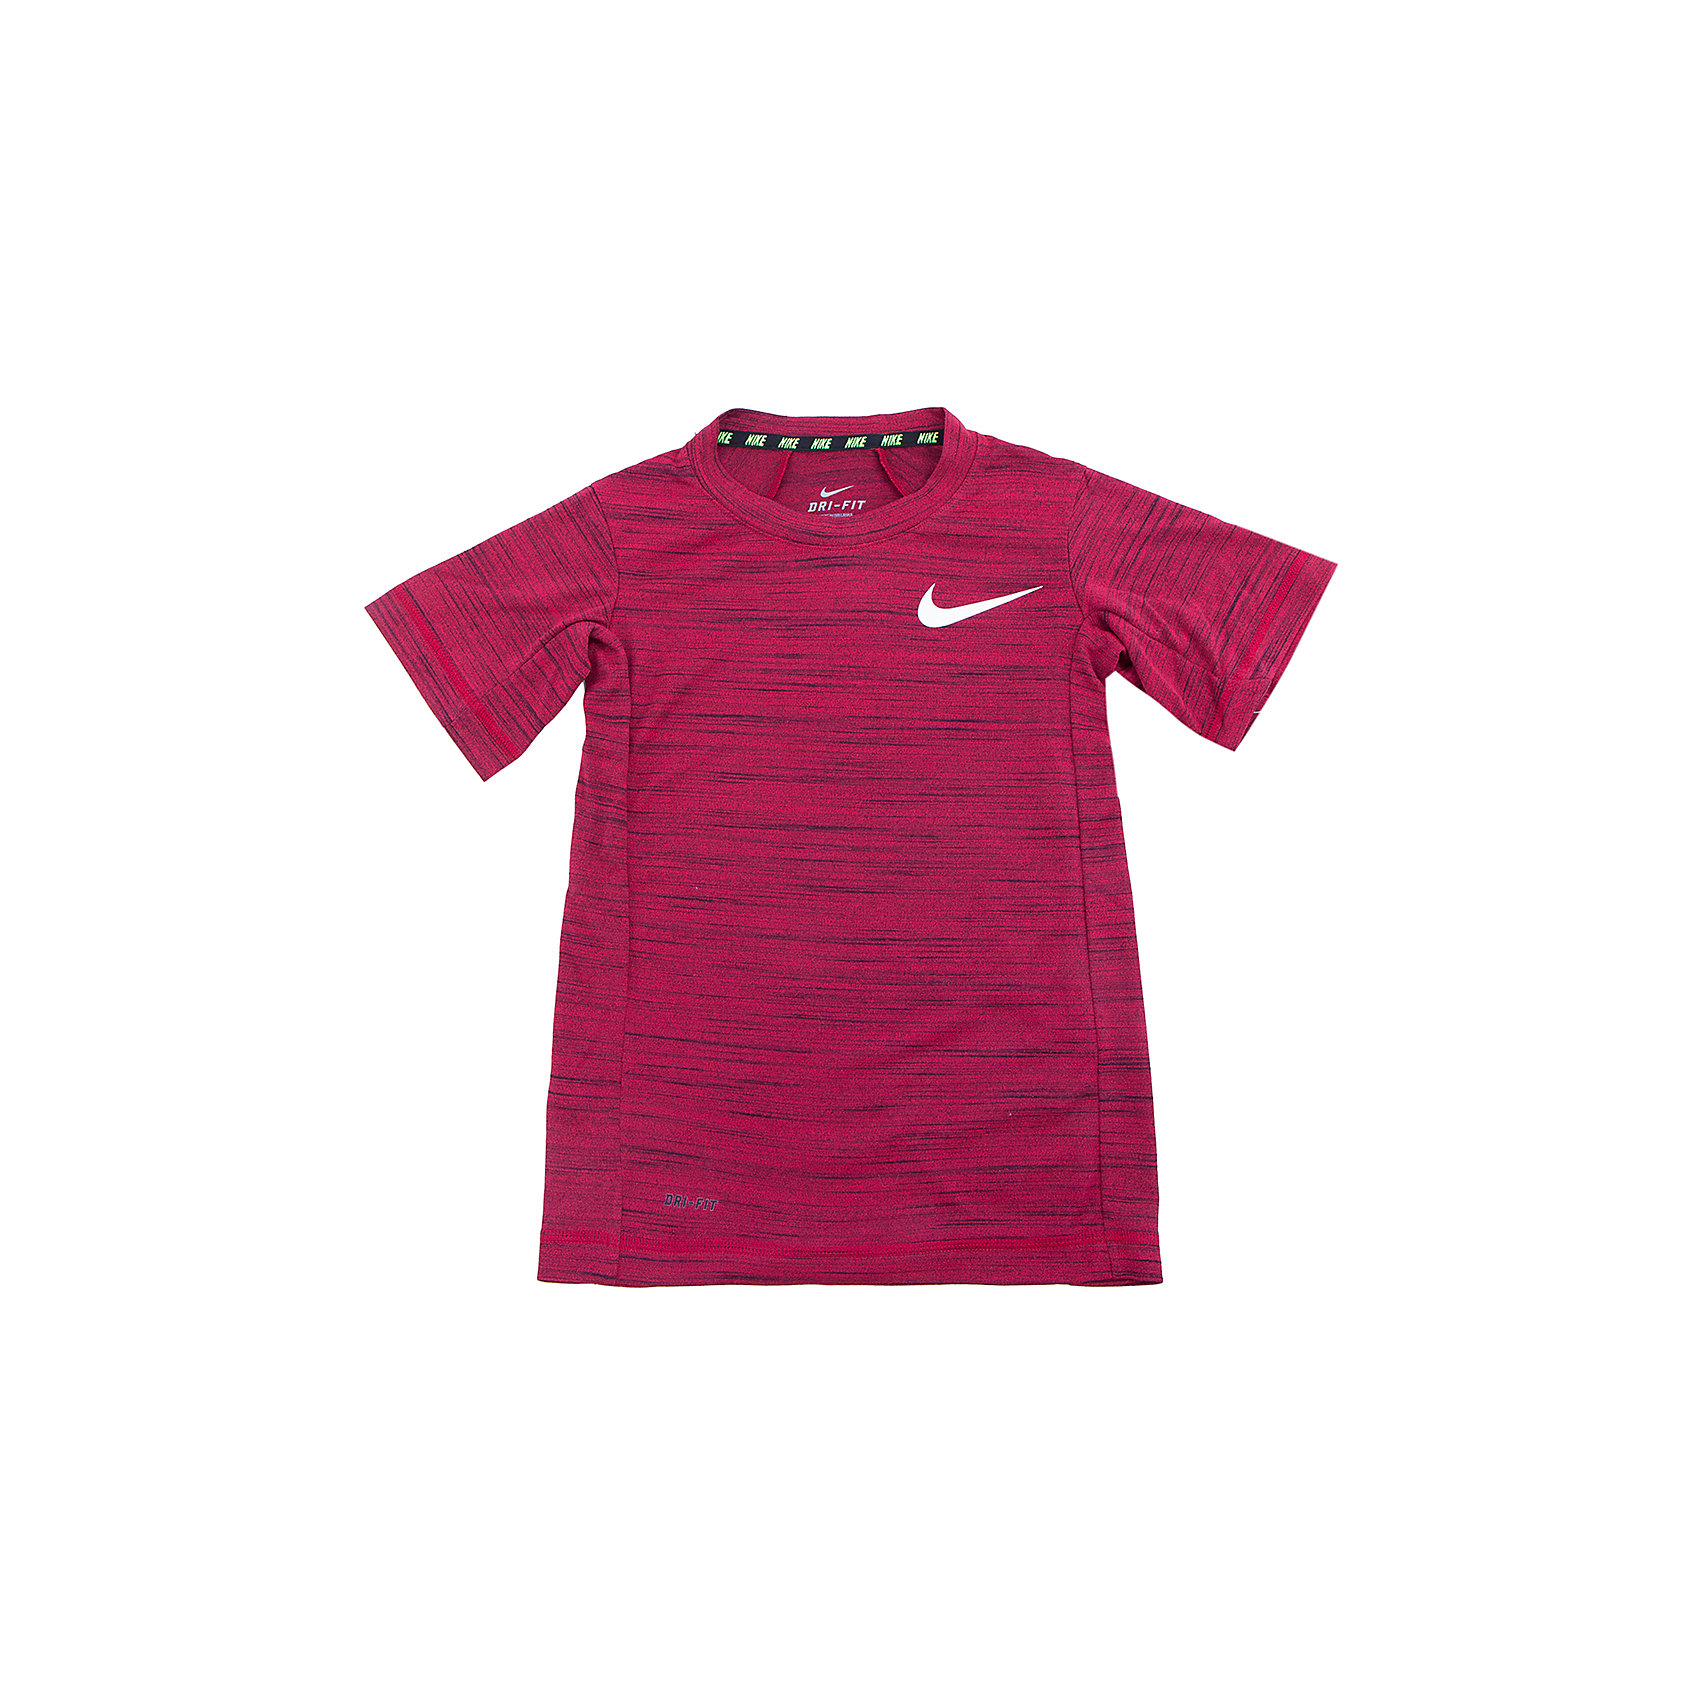 NIKE Футболка для мальчика NIKE DF COOL SS TOP YTH NIKE nike футболка для мальчика nike df cool ss top yth nike